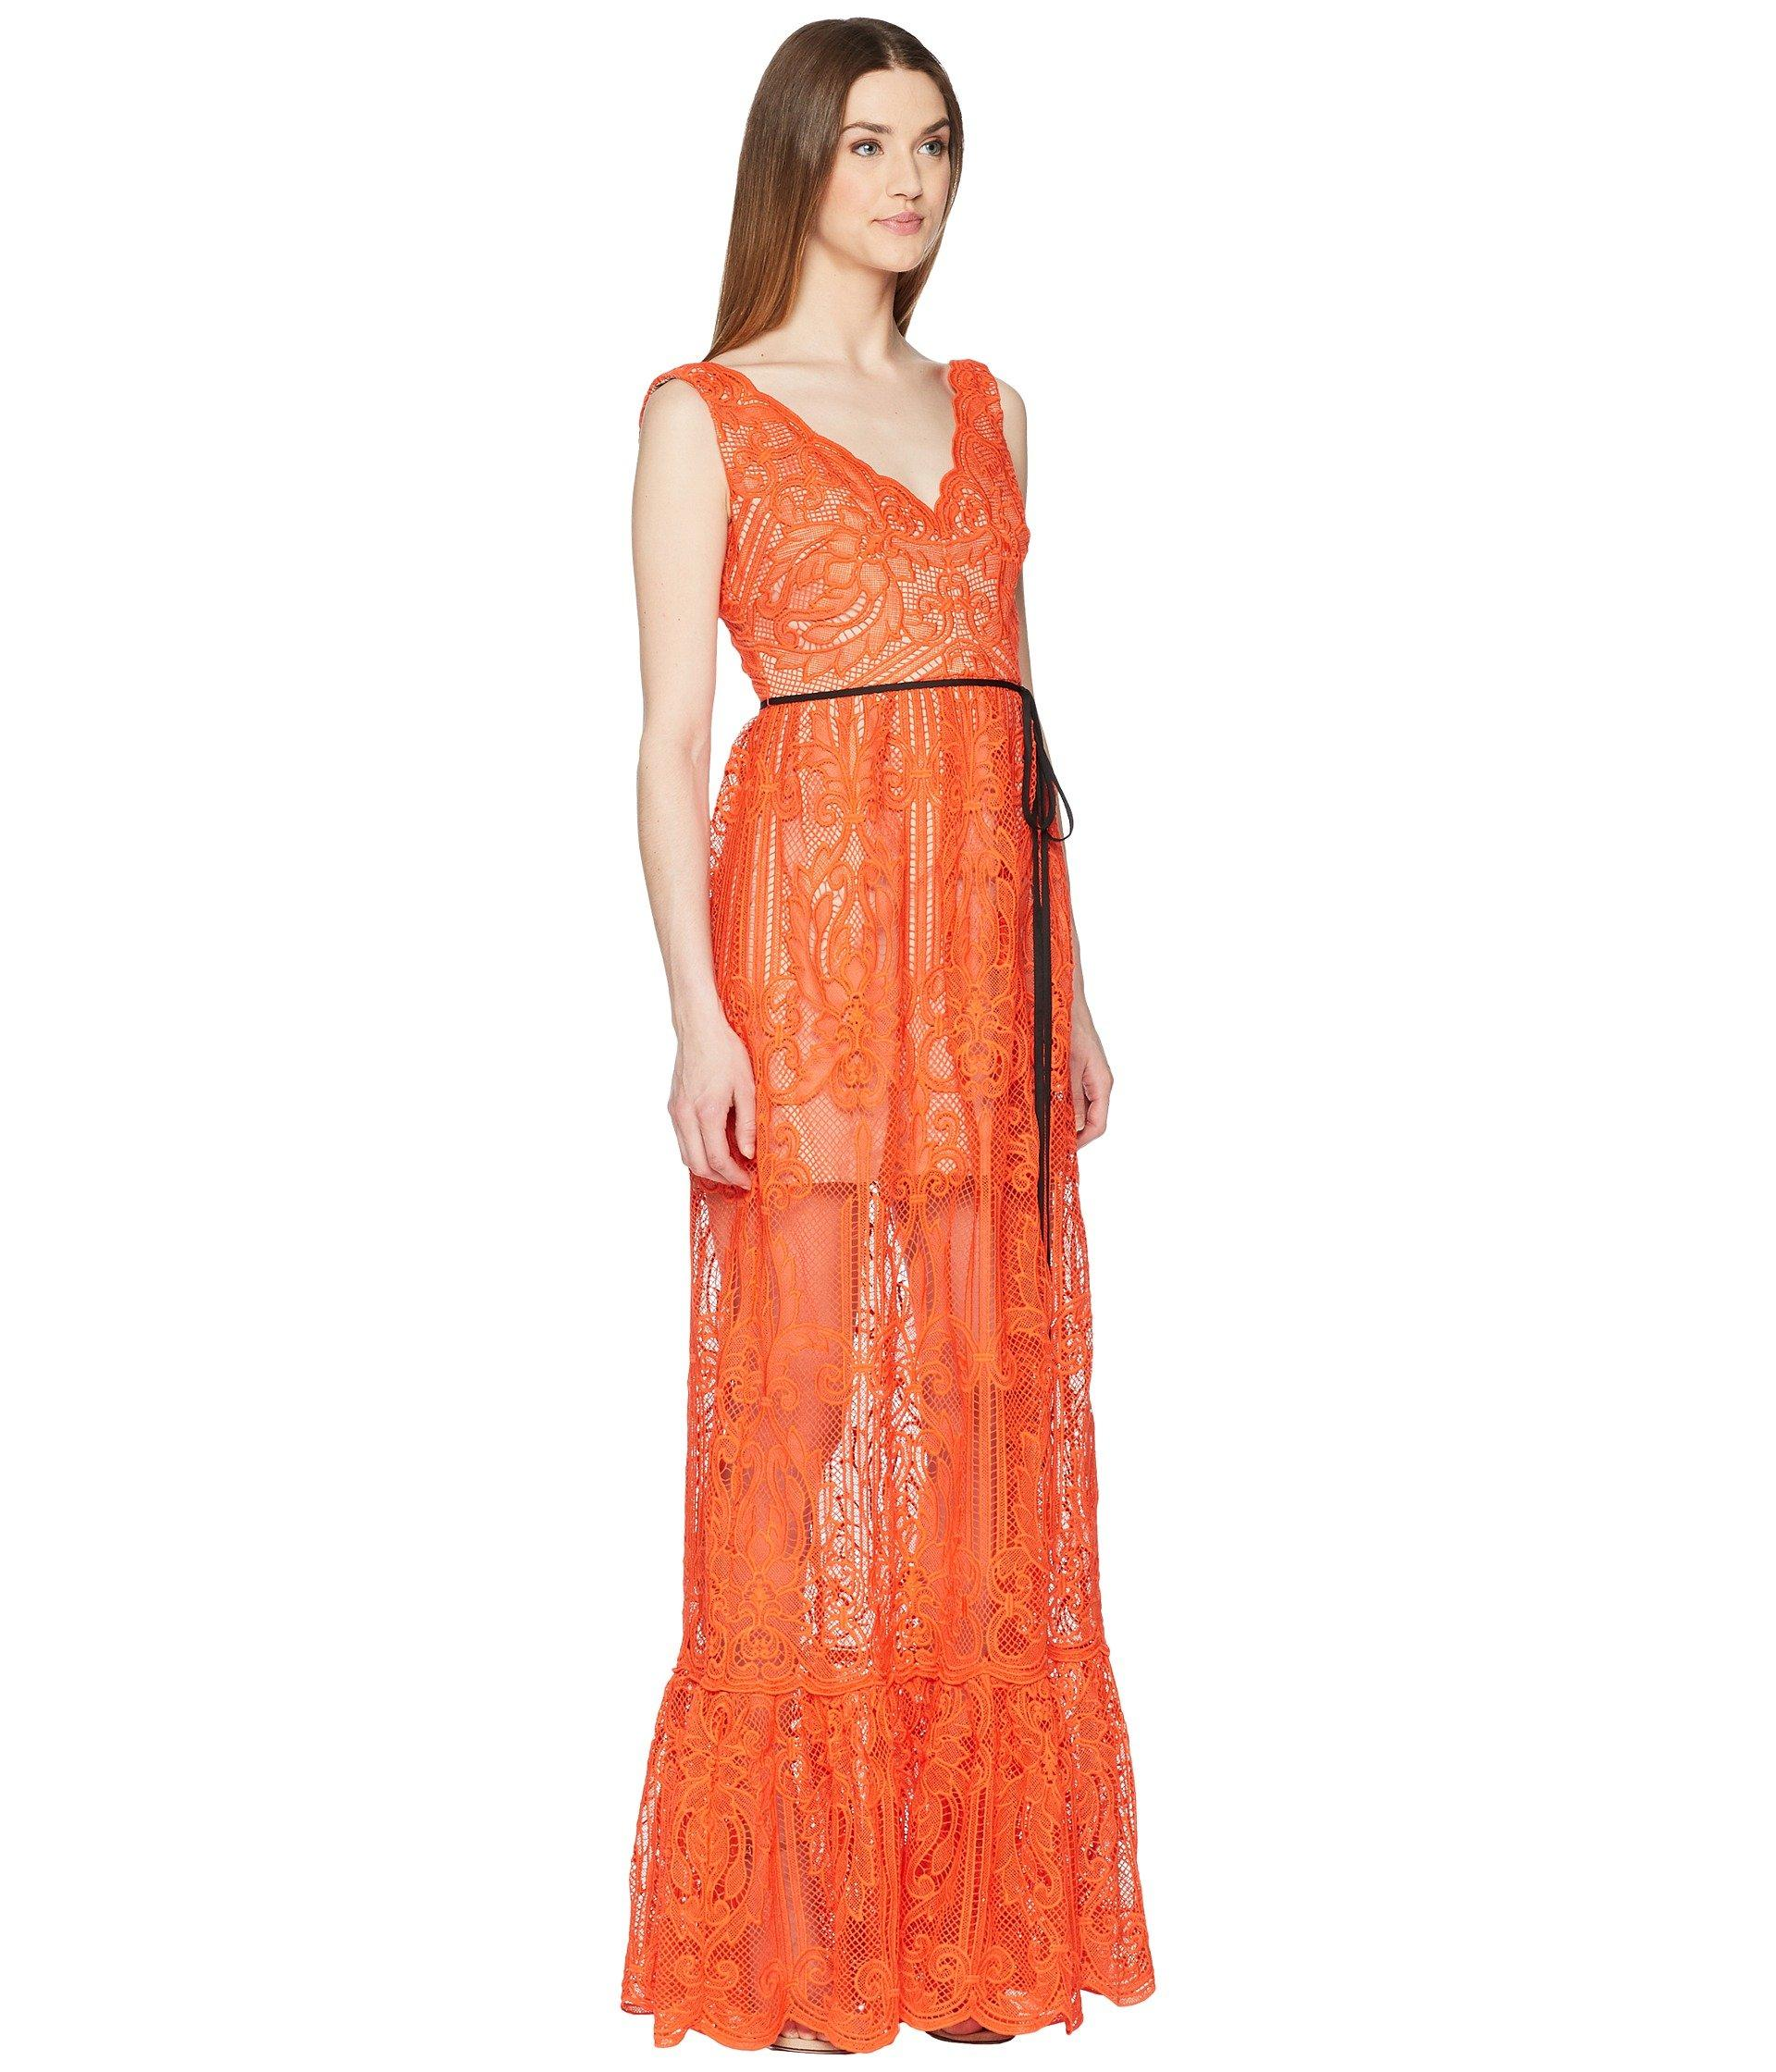 79bb1ce1813 ML Monique Lhuillier Lace Overlay Sleeveless Maxi Dress in Orange - Save  36% - Lyst